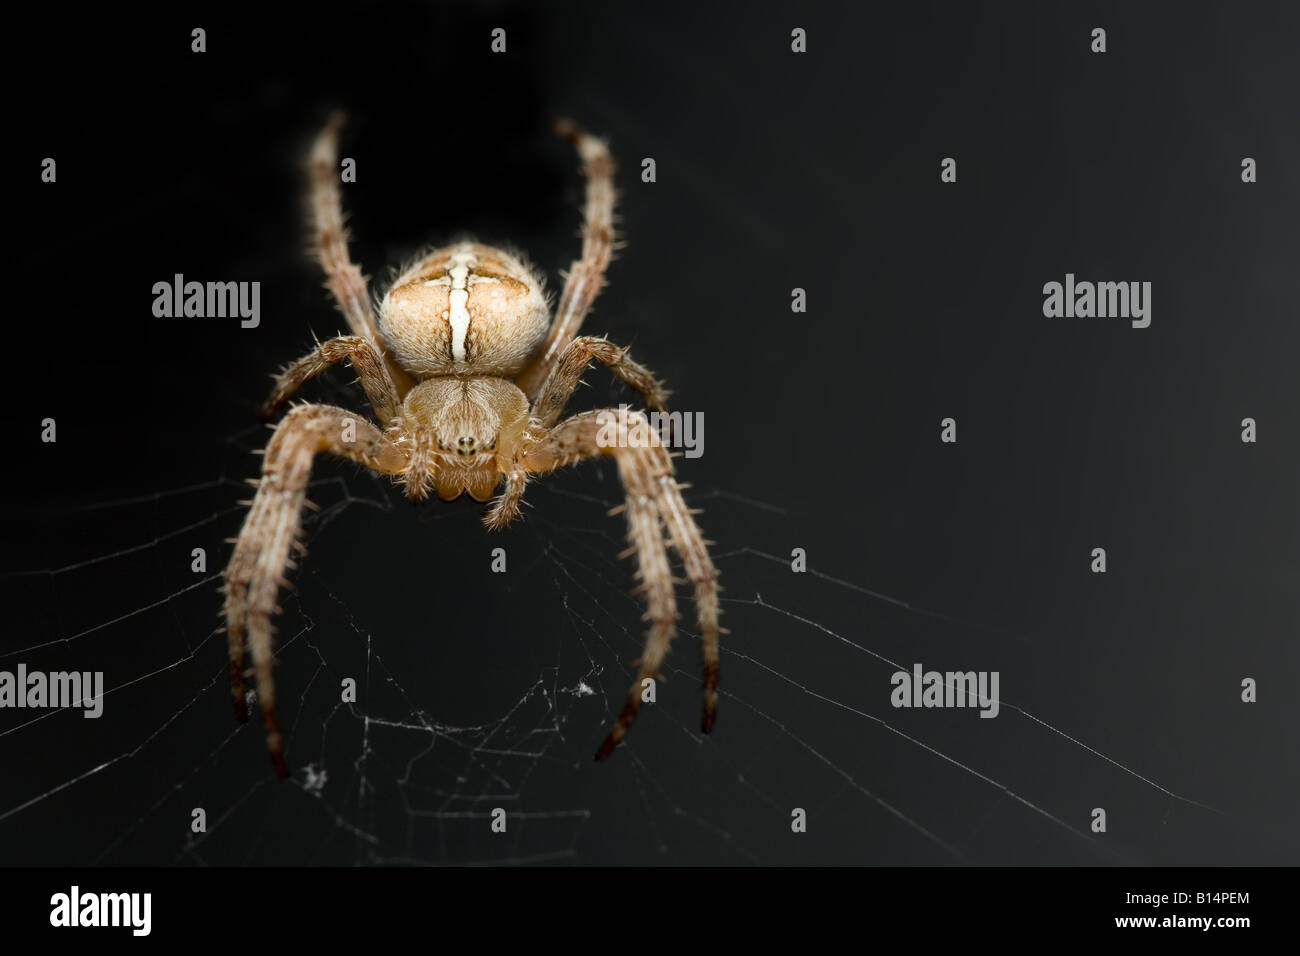 big spider - Stock Image